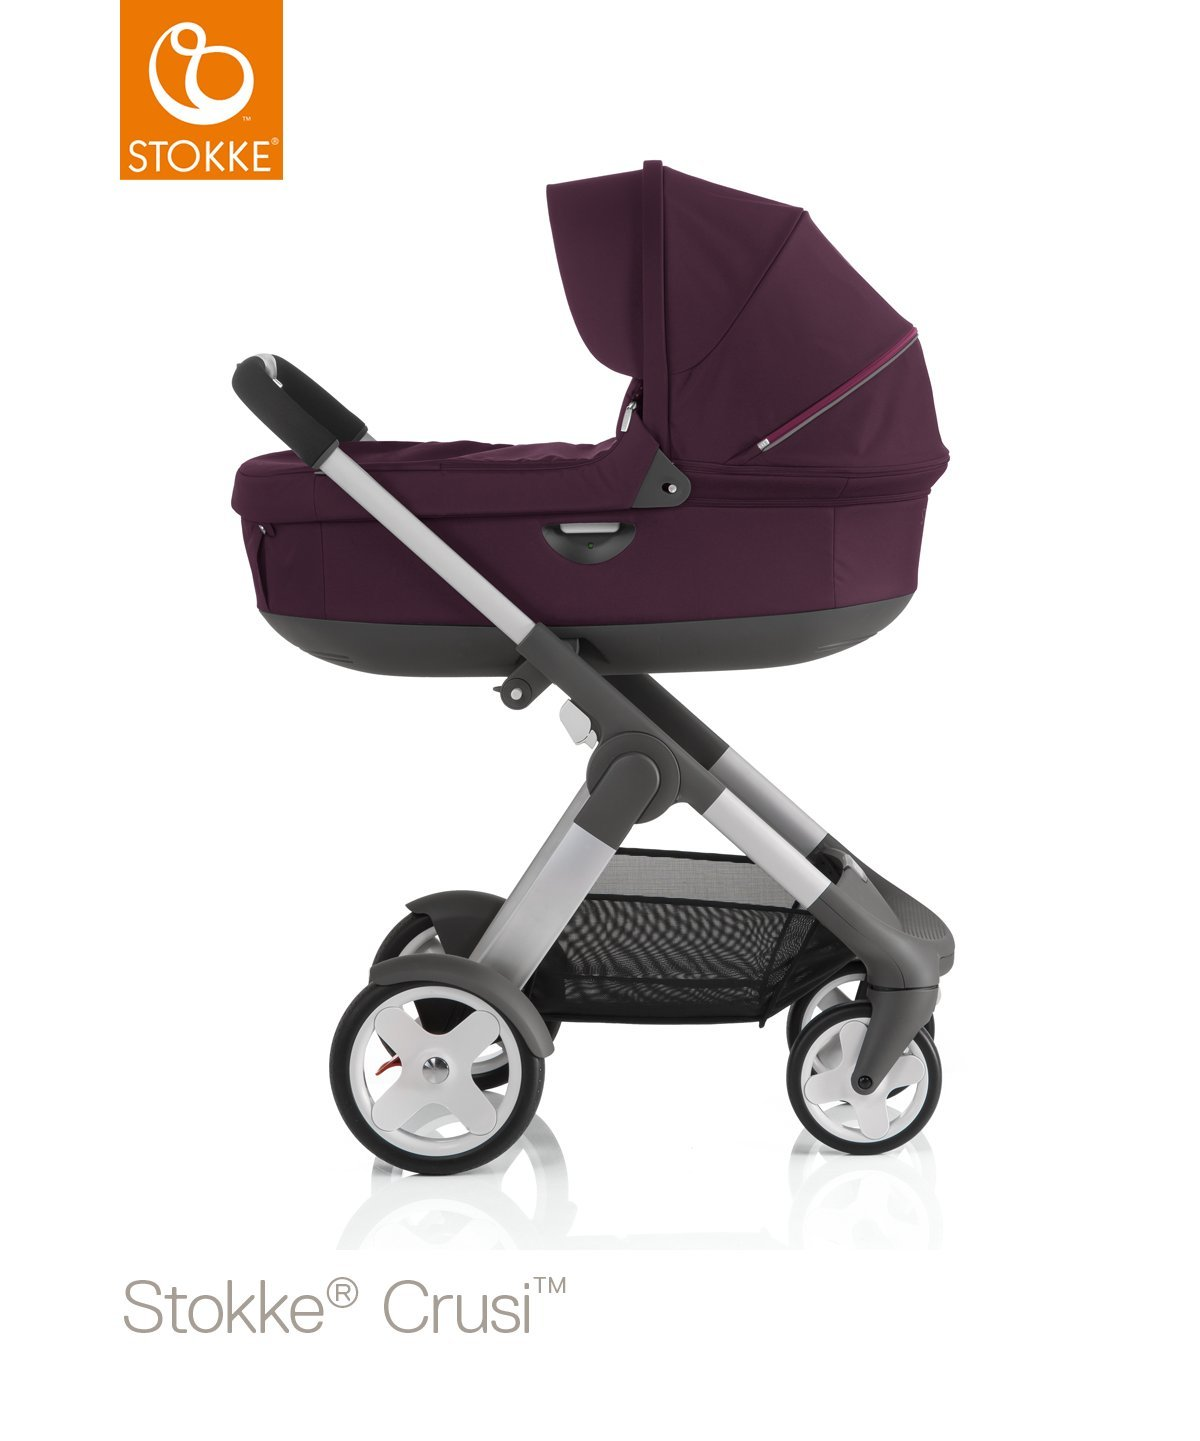 Stokke Crusi Carry Cot - Purple by Stokke (Image #2)